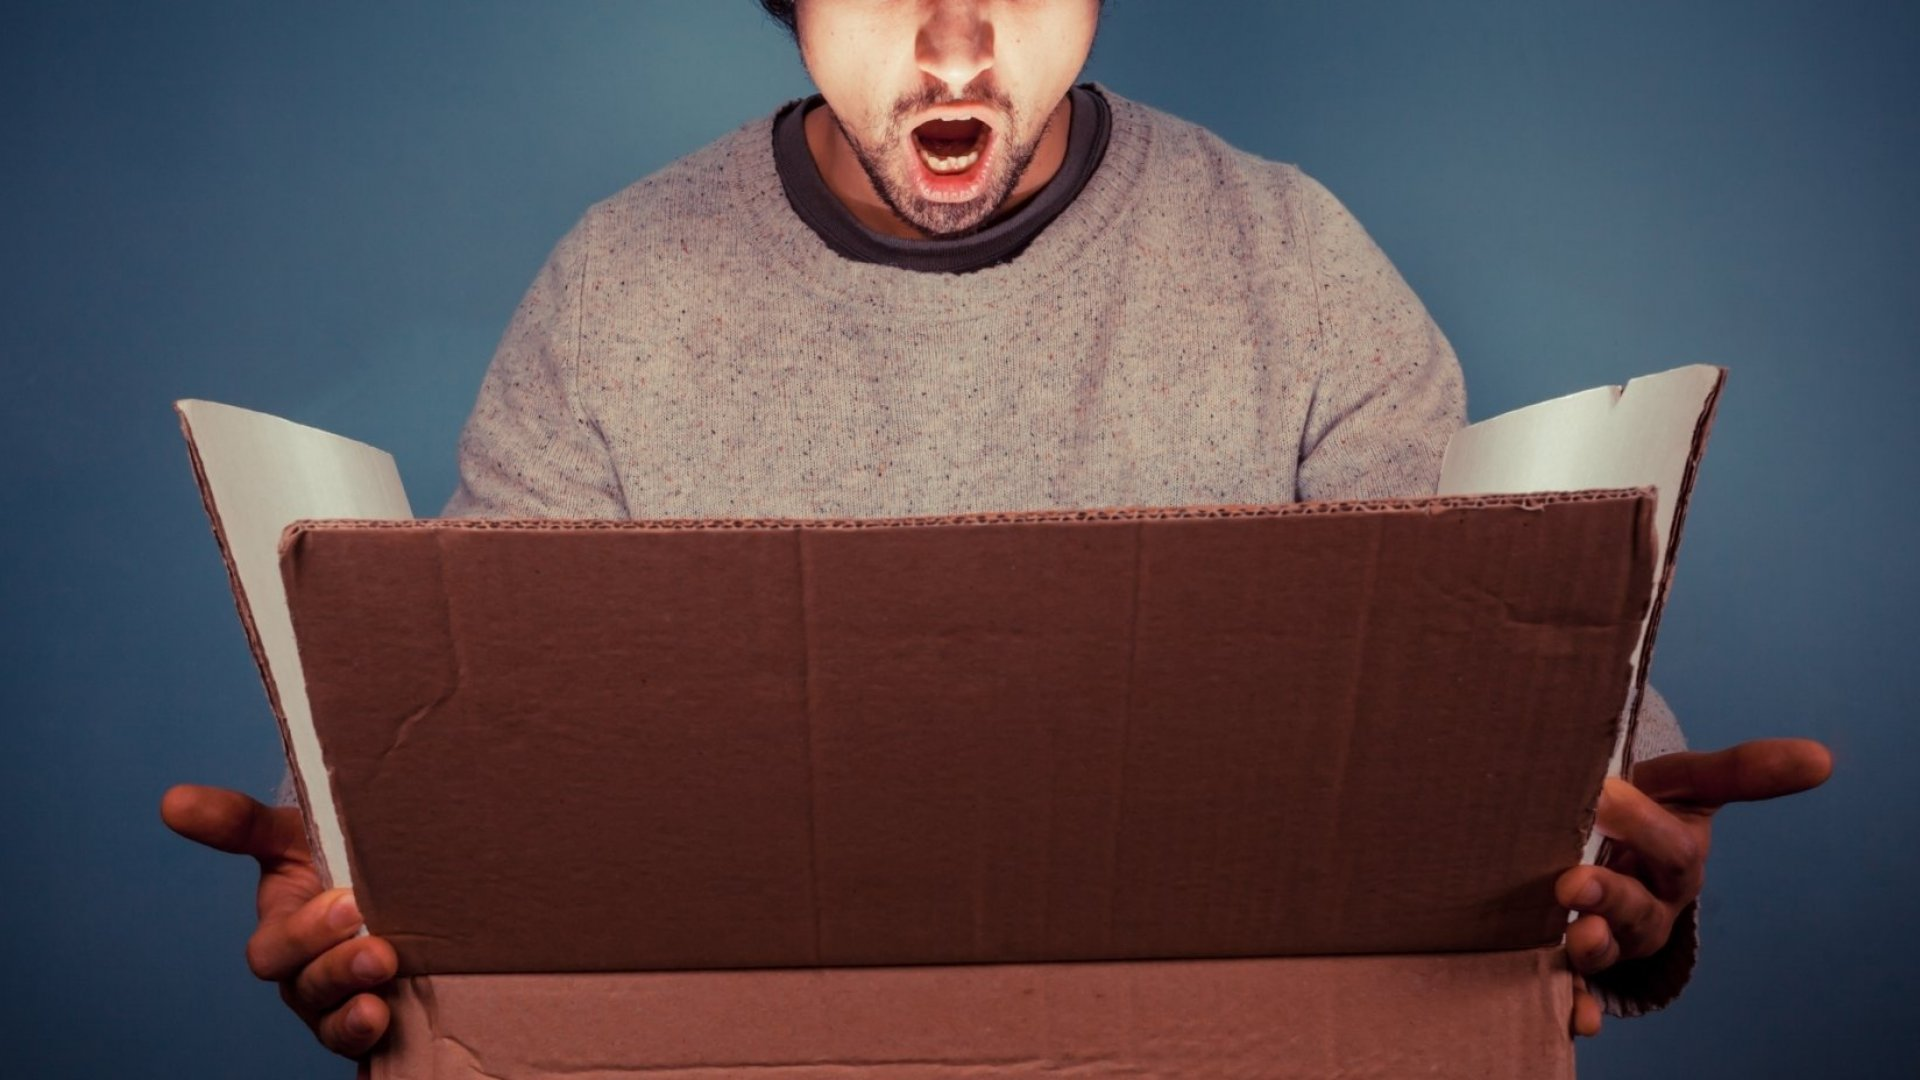 Unboxing: How a Bunch of Low-Budget YouTube Videos Became Must-See TV